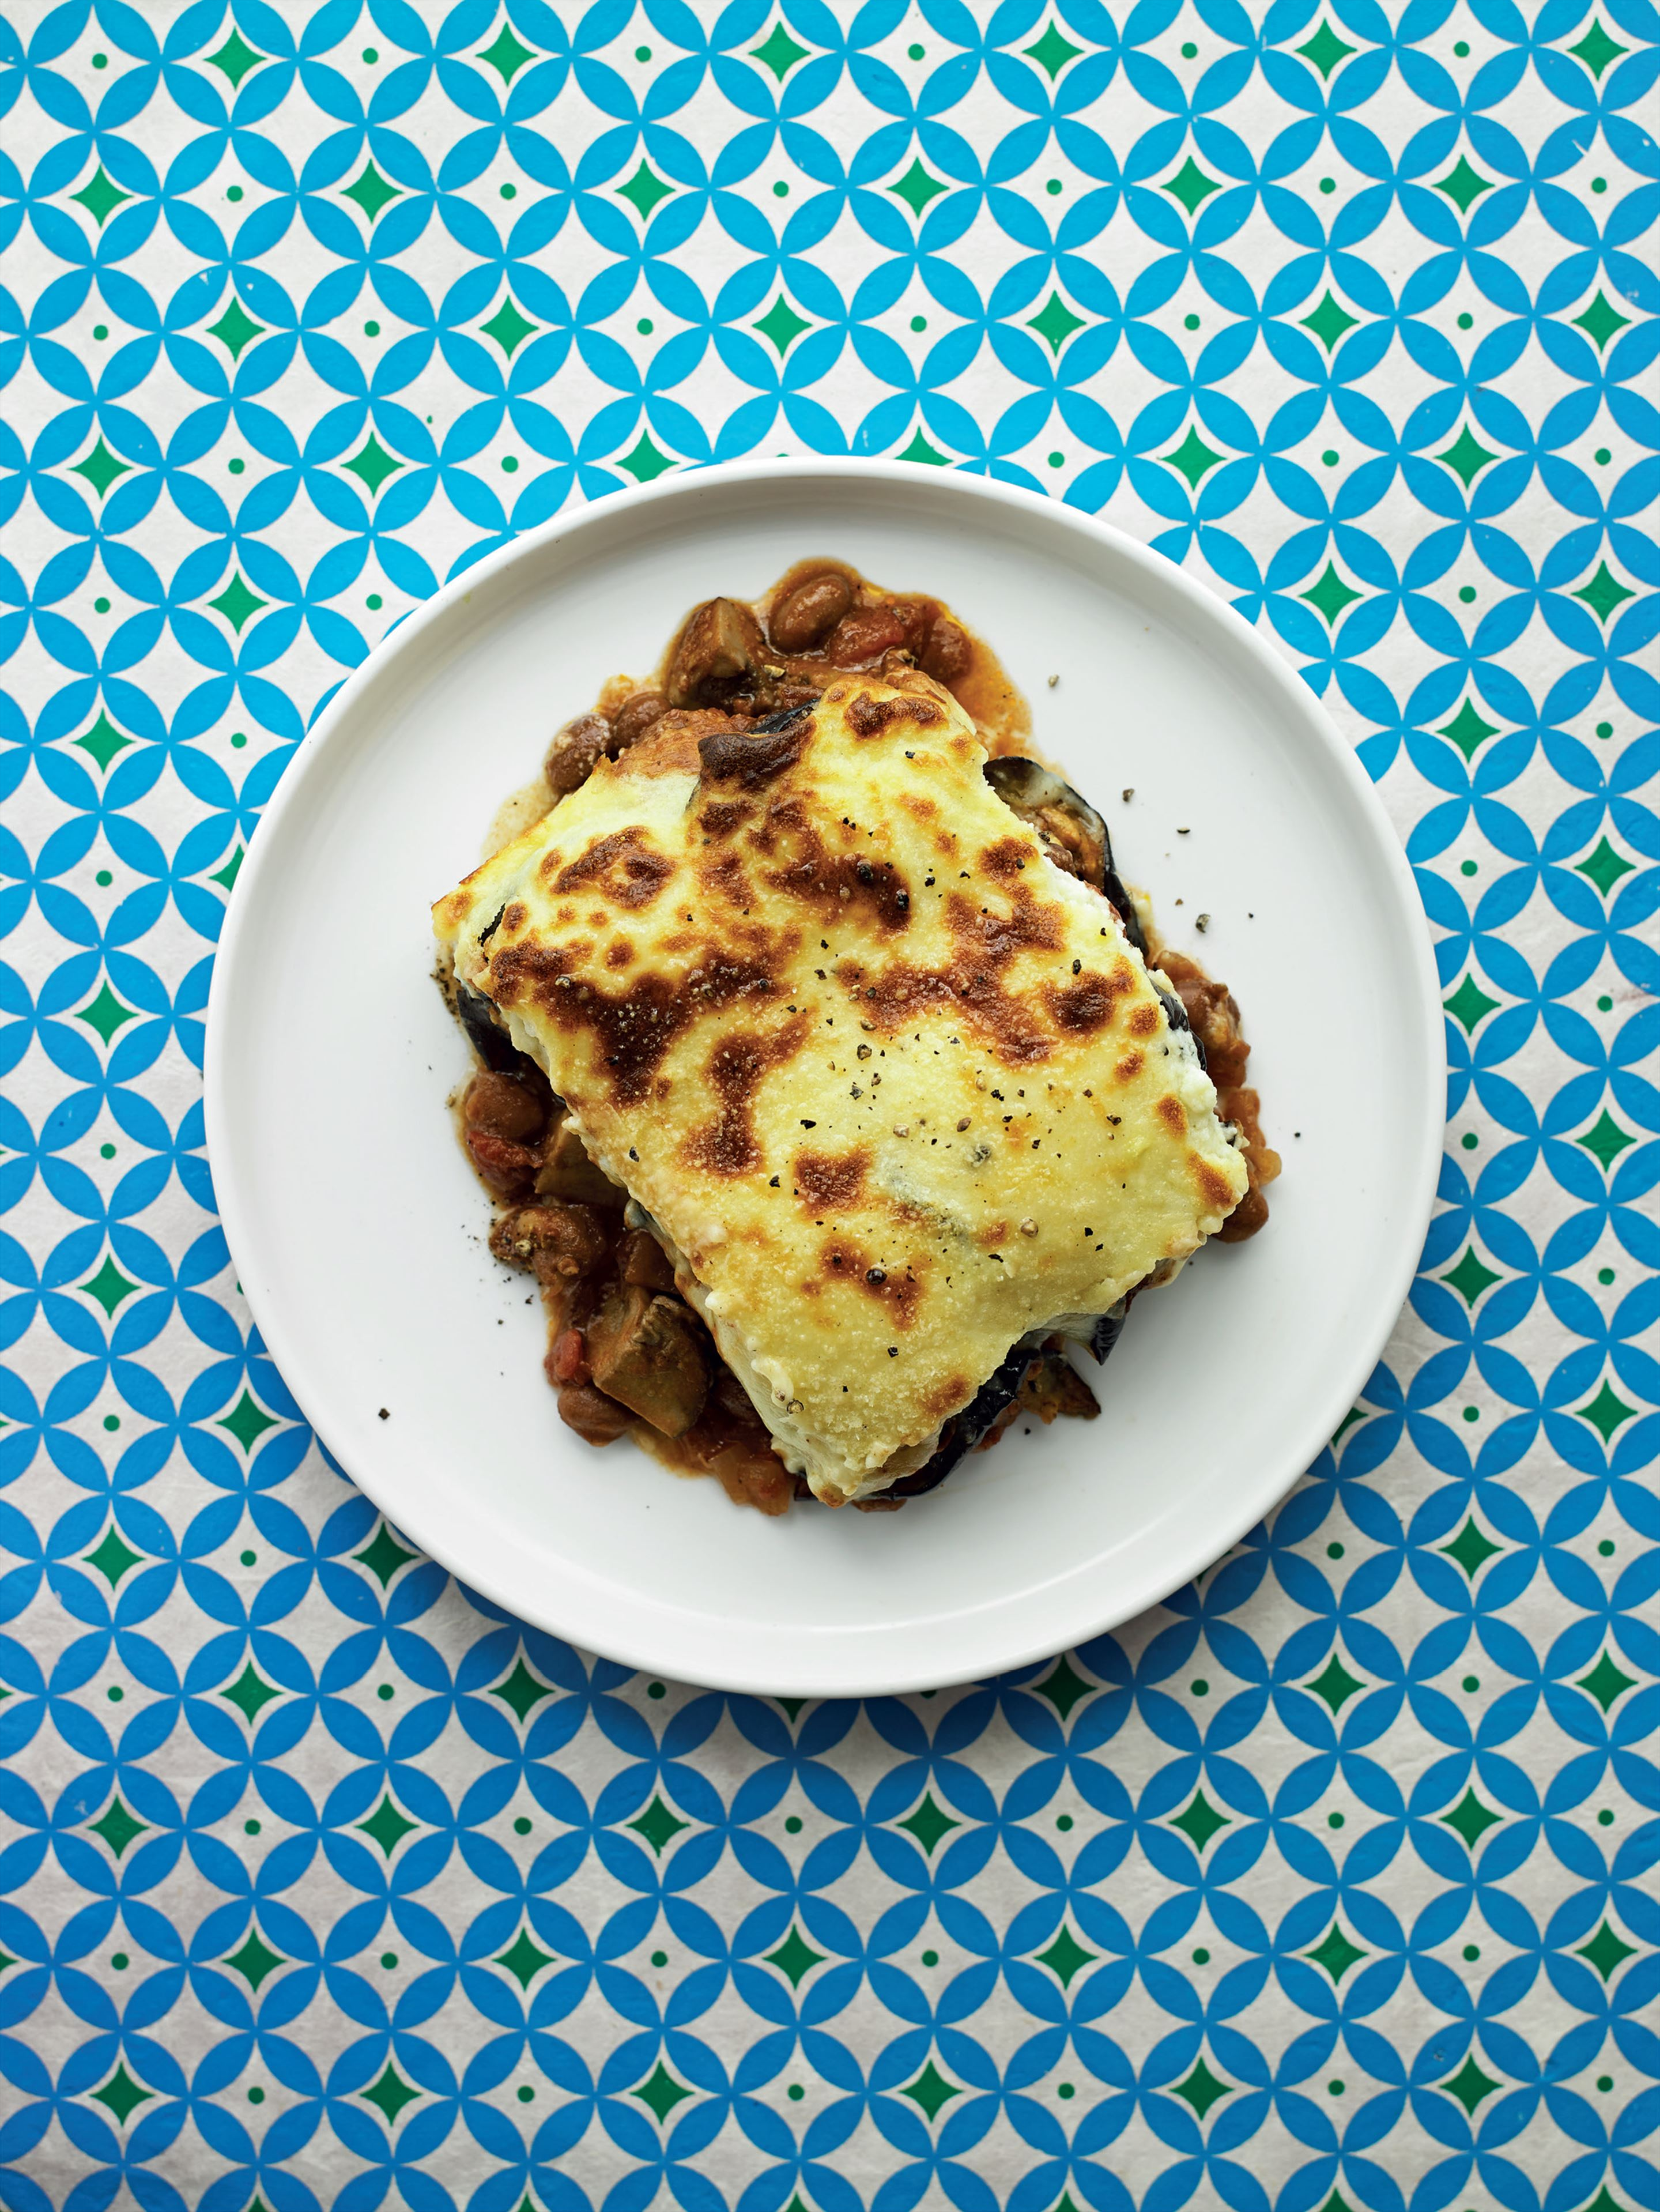 Magnificent moussaka